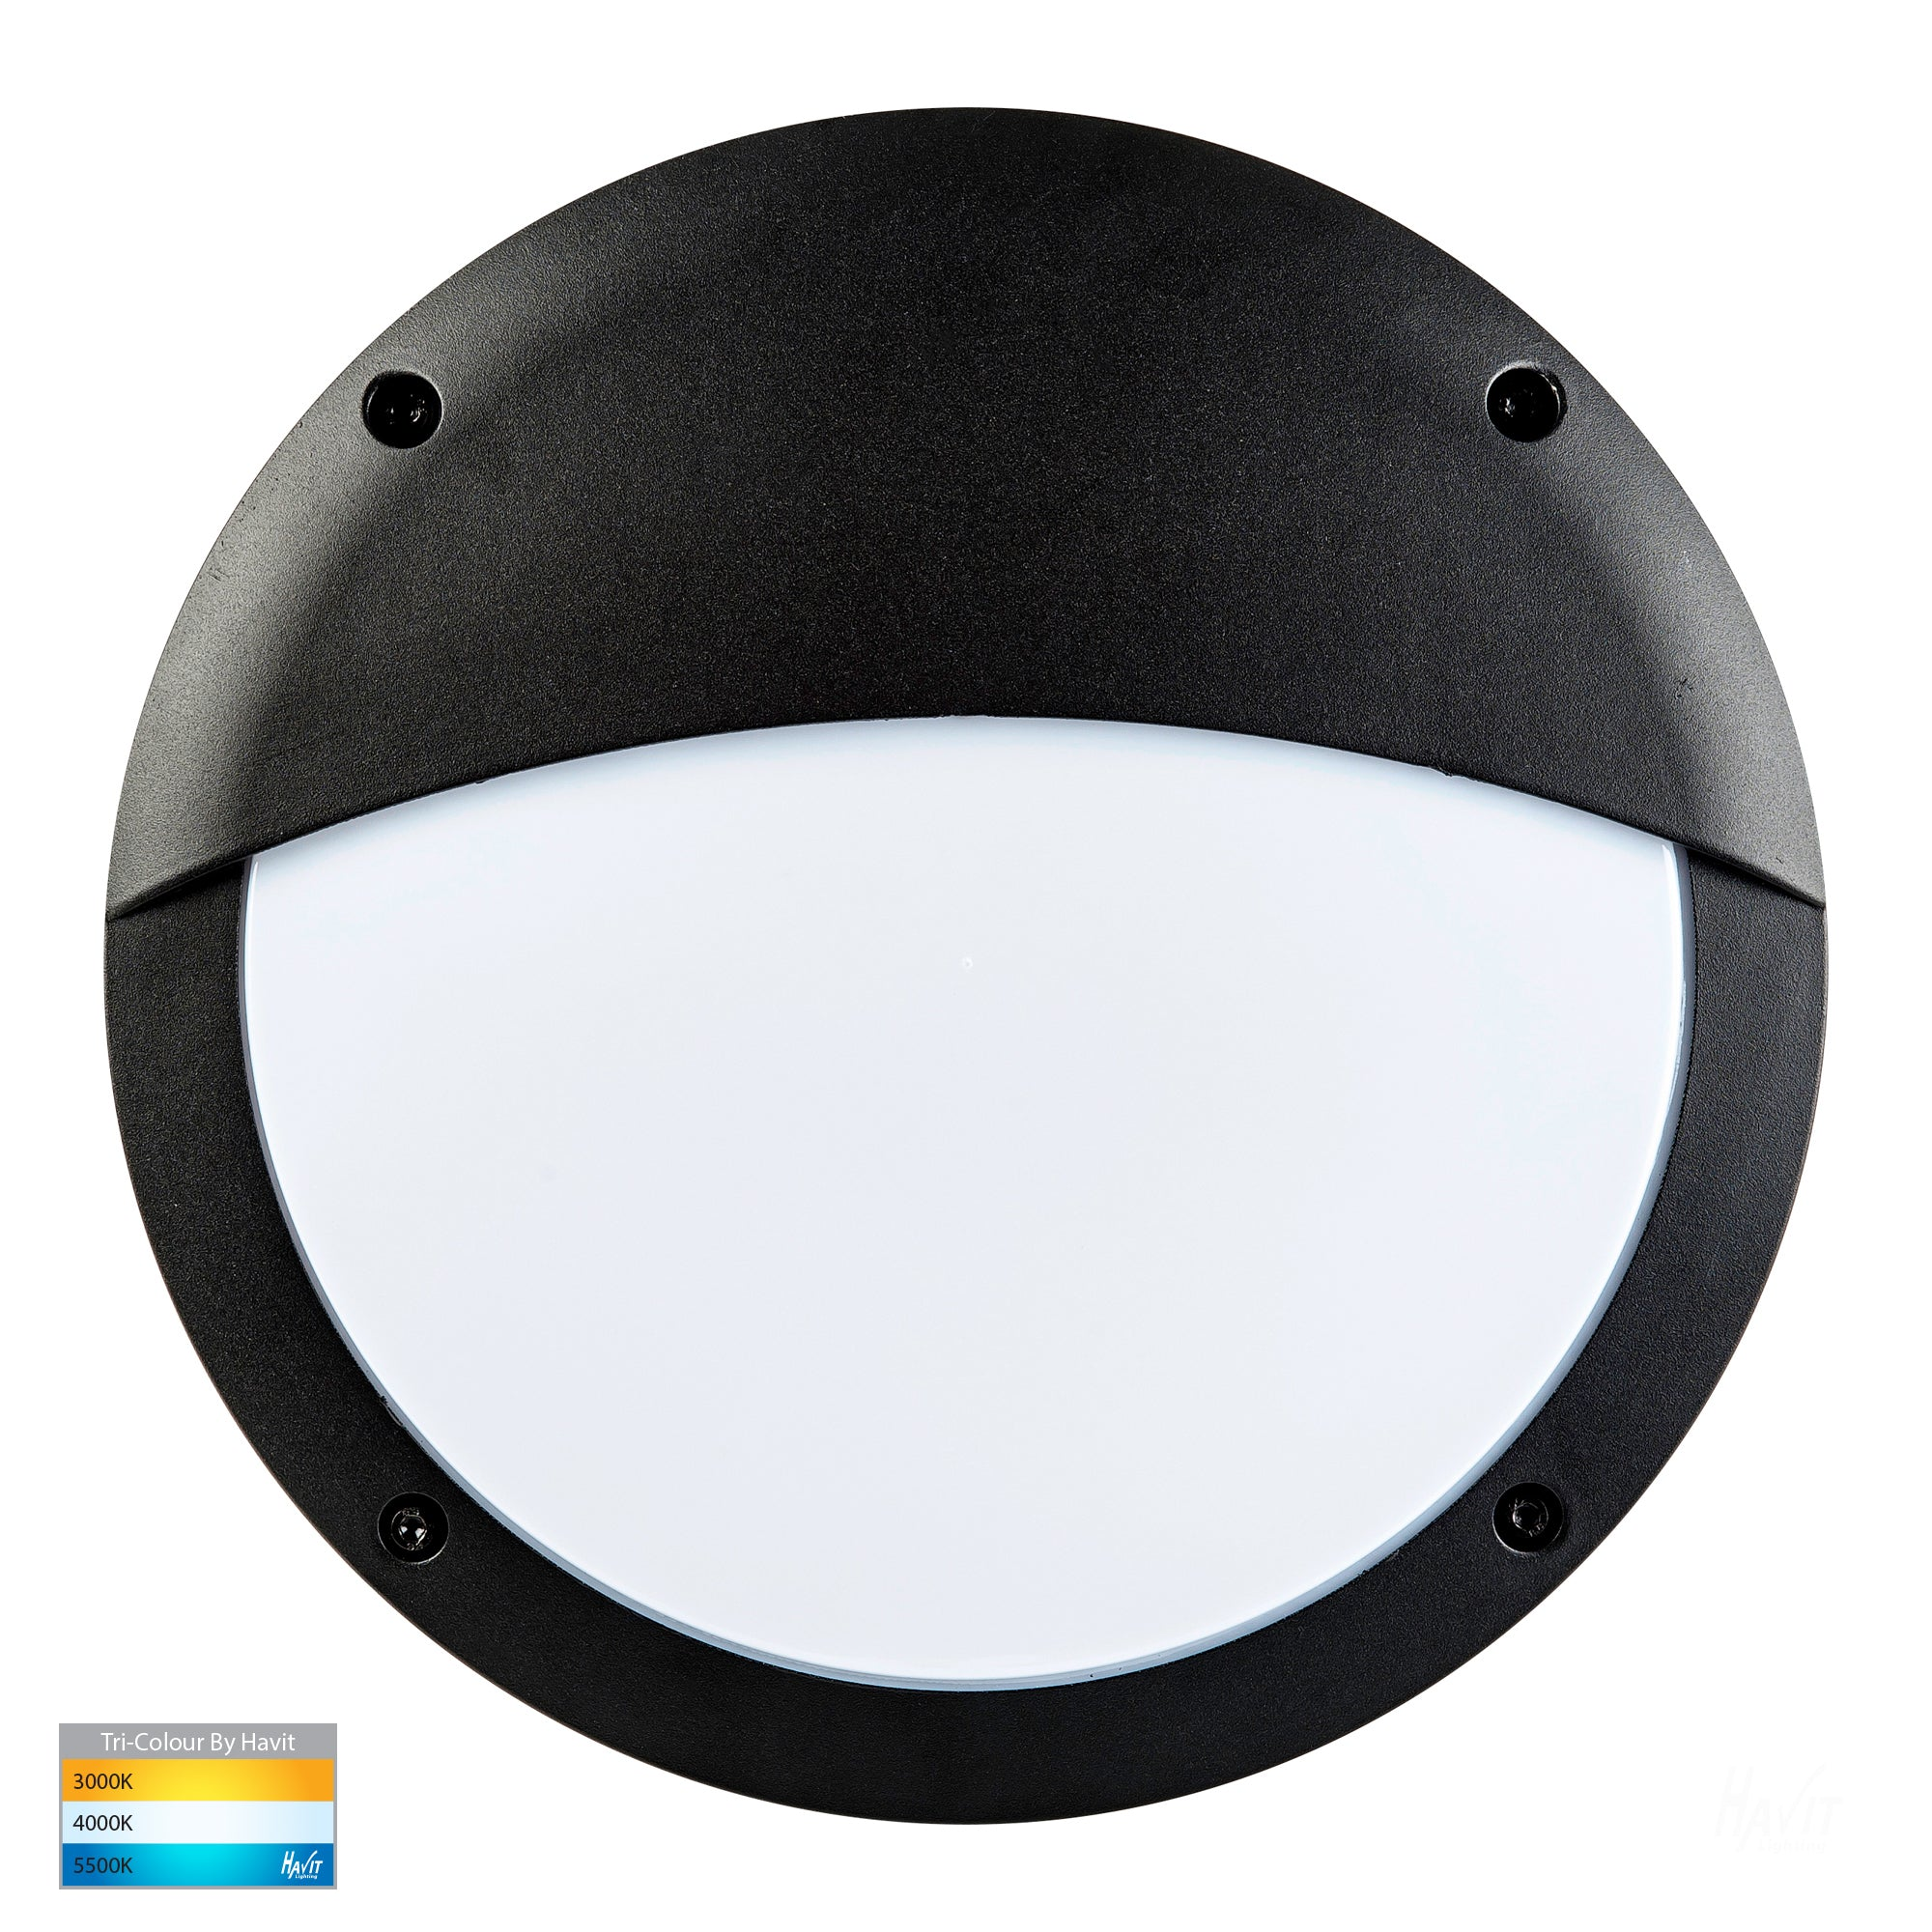 HV3671T-BLK - Stor Black LED Bunker Light with Eyelid